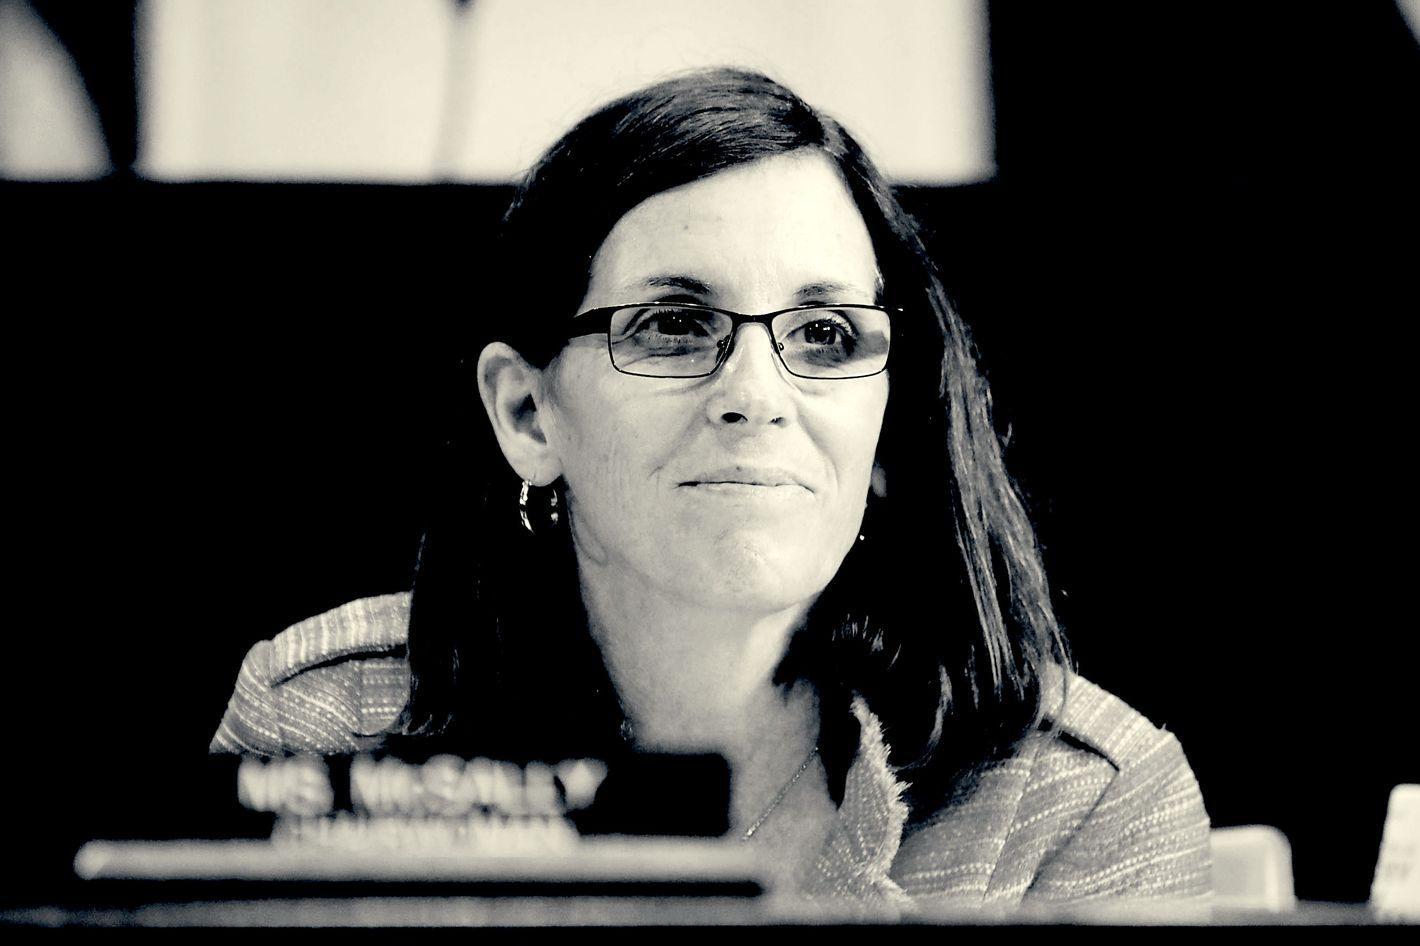 The Martha McSally who ran for Congress in 2012 would not recognize herself today Then she was a retired Air Force Colonel mounting two unsuccessful